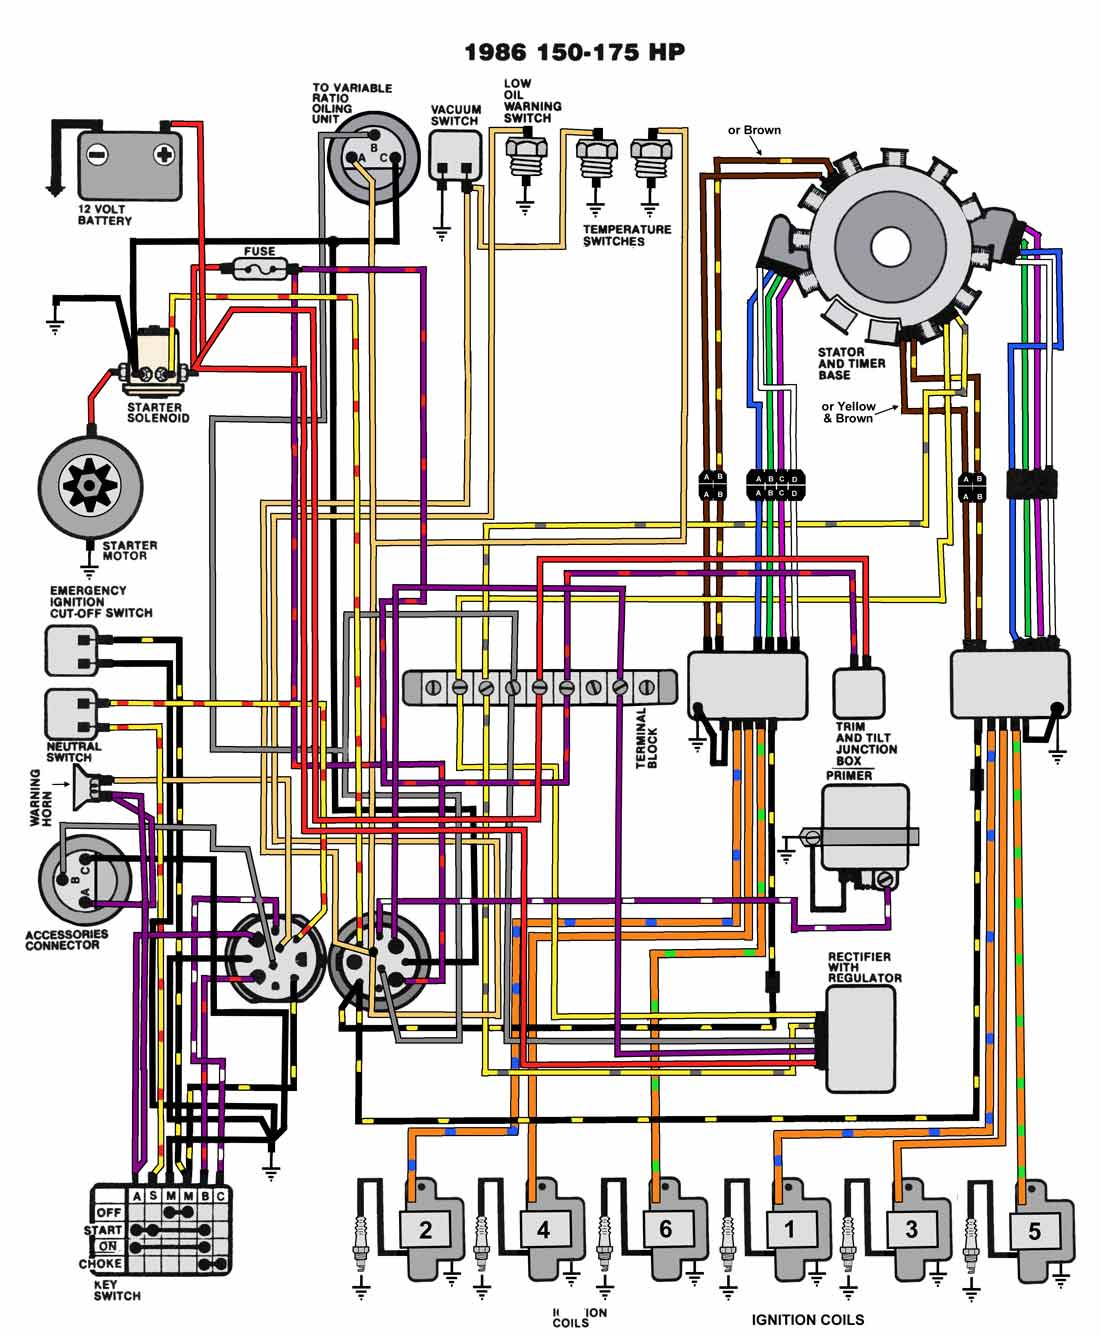 1986_150_175 mastertech marine evinrude johnson outboard wiring diagrams evinrude key switch wiring diagram at n-0.co